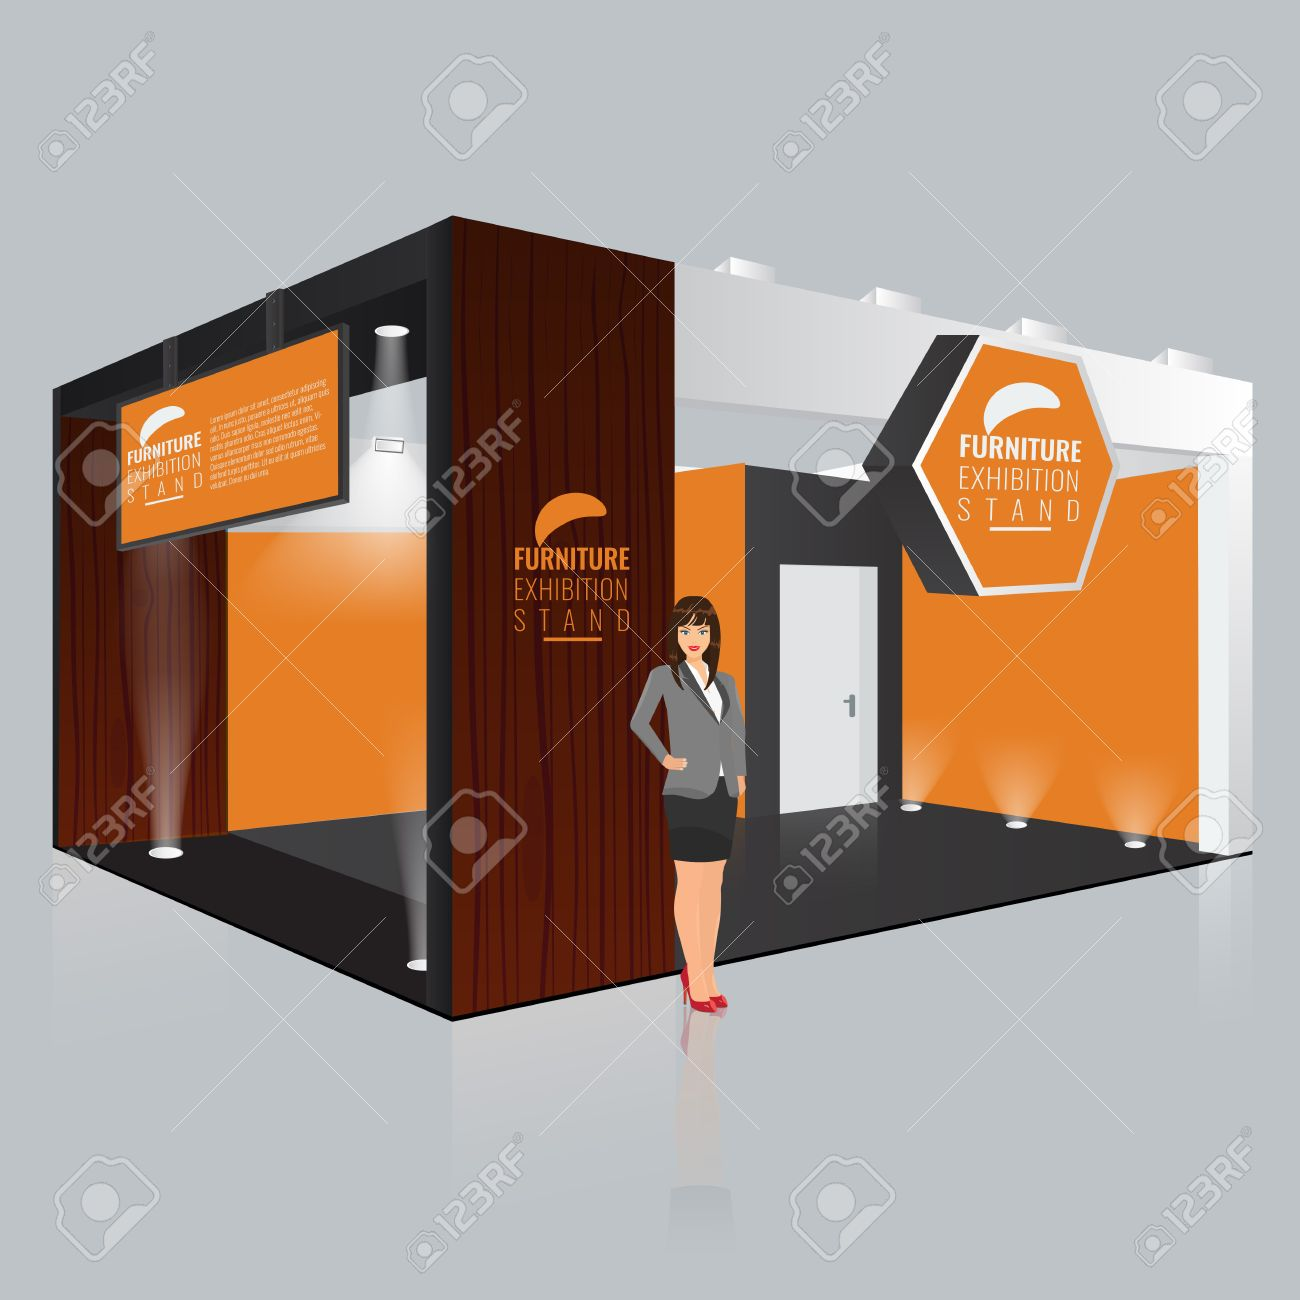 Exhibition Stall Xl : Creative exhibition stand display design with info board. booth